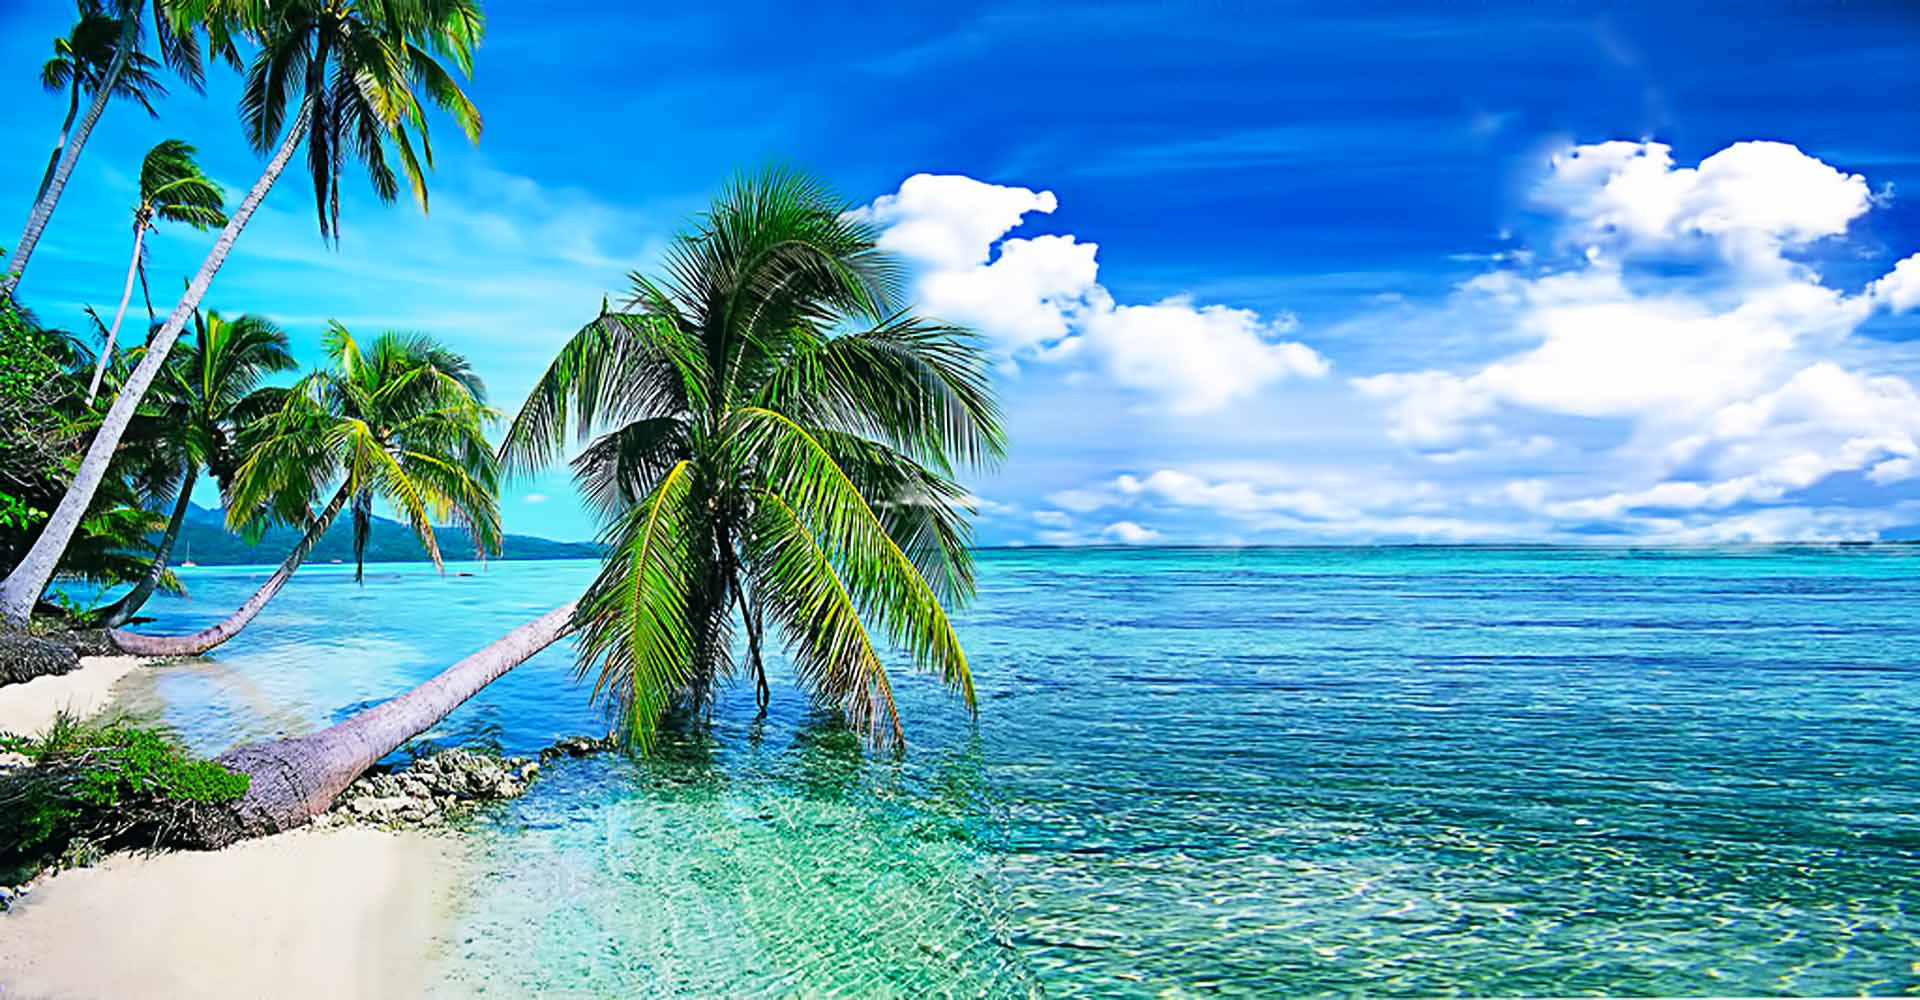 Live Beach Wallpaper For Desktop